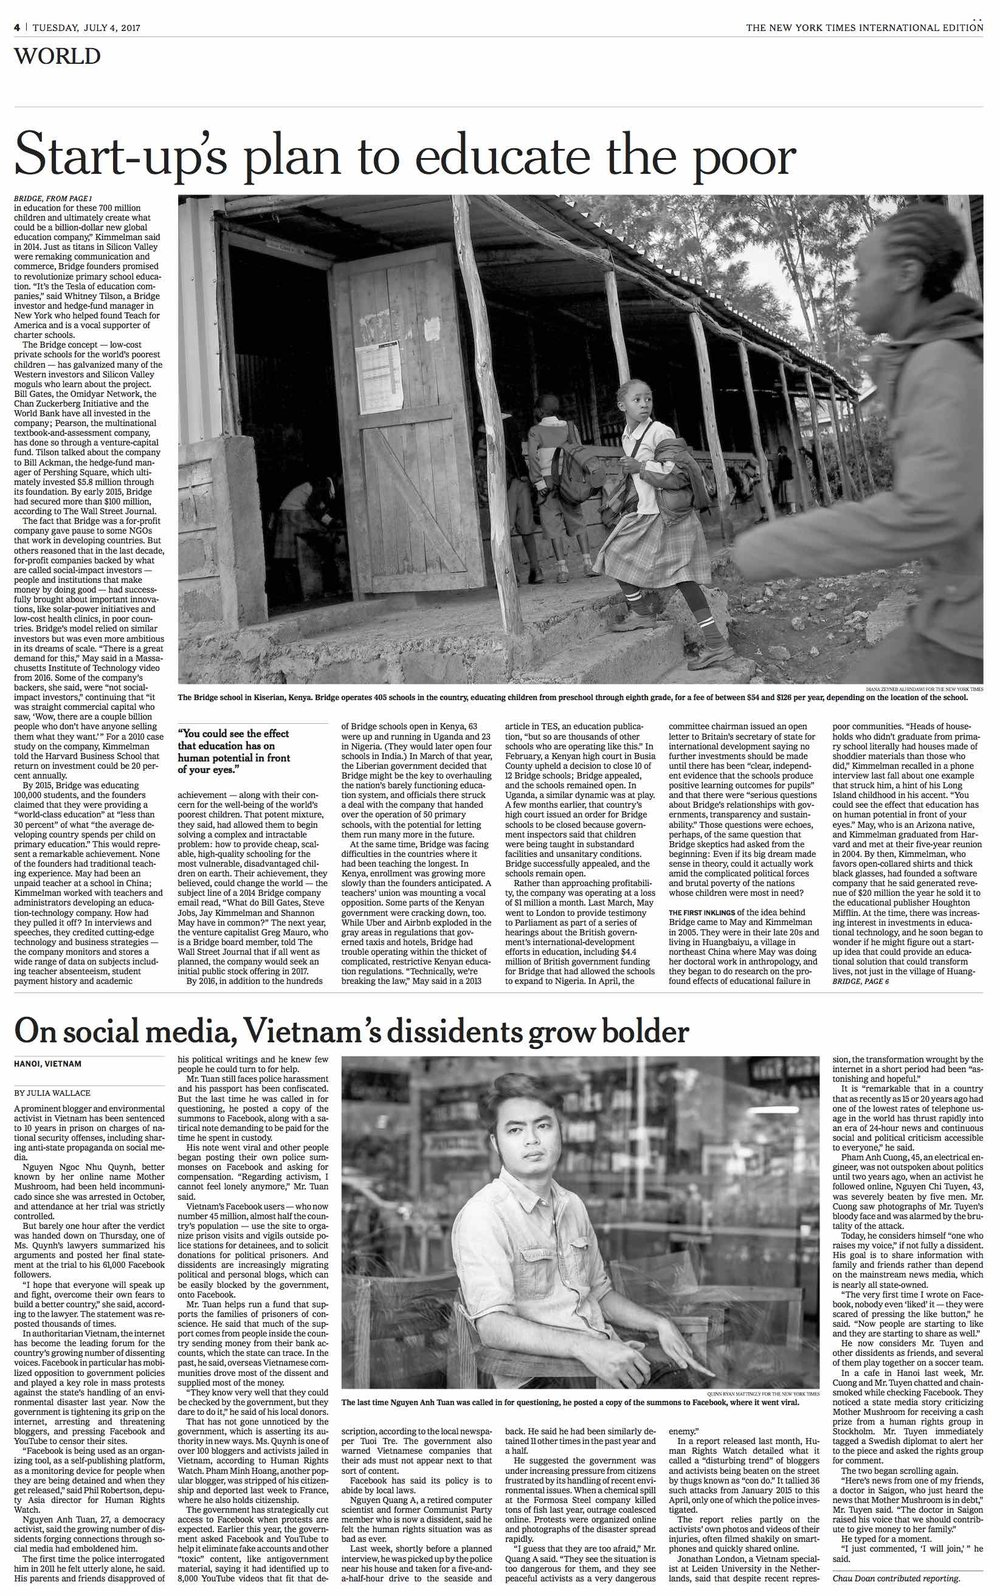 Diana Zeyneb Alhindawi_2017_07_04_International New York Times_page 4 s_bridge education africa.jpg